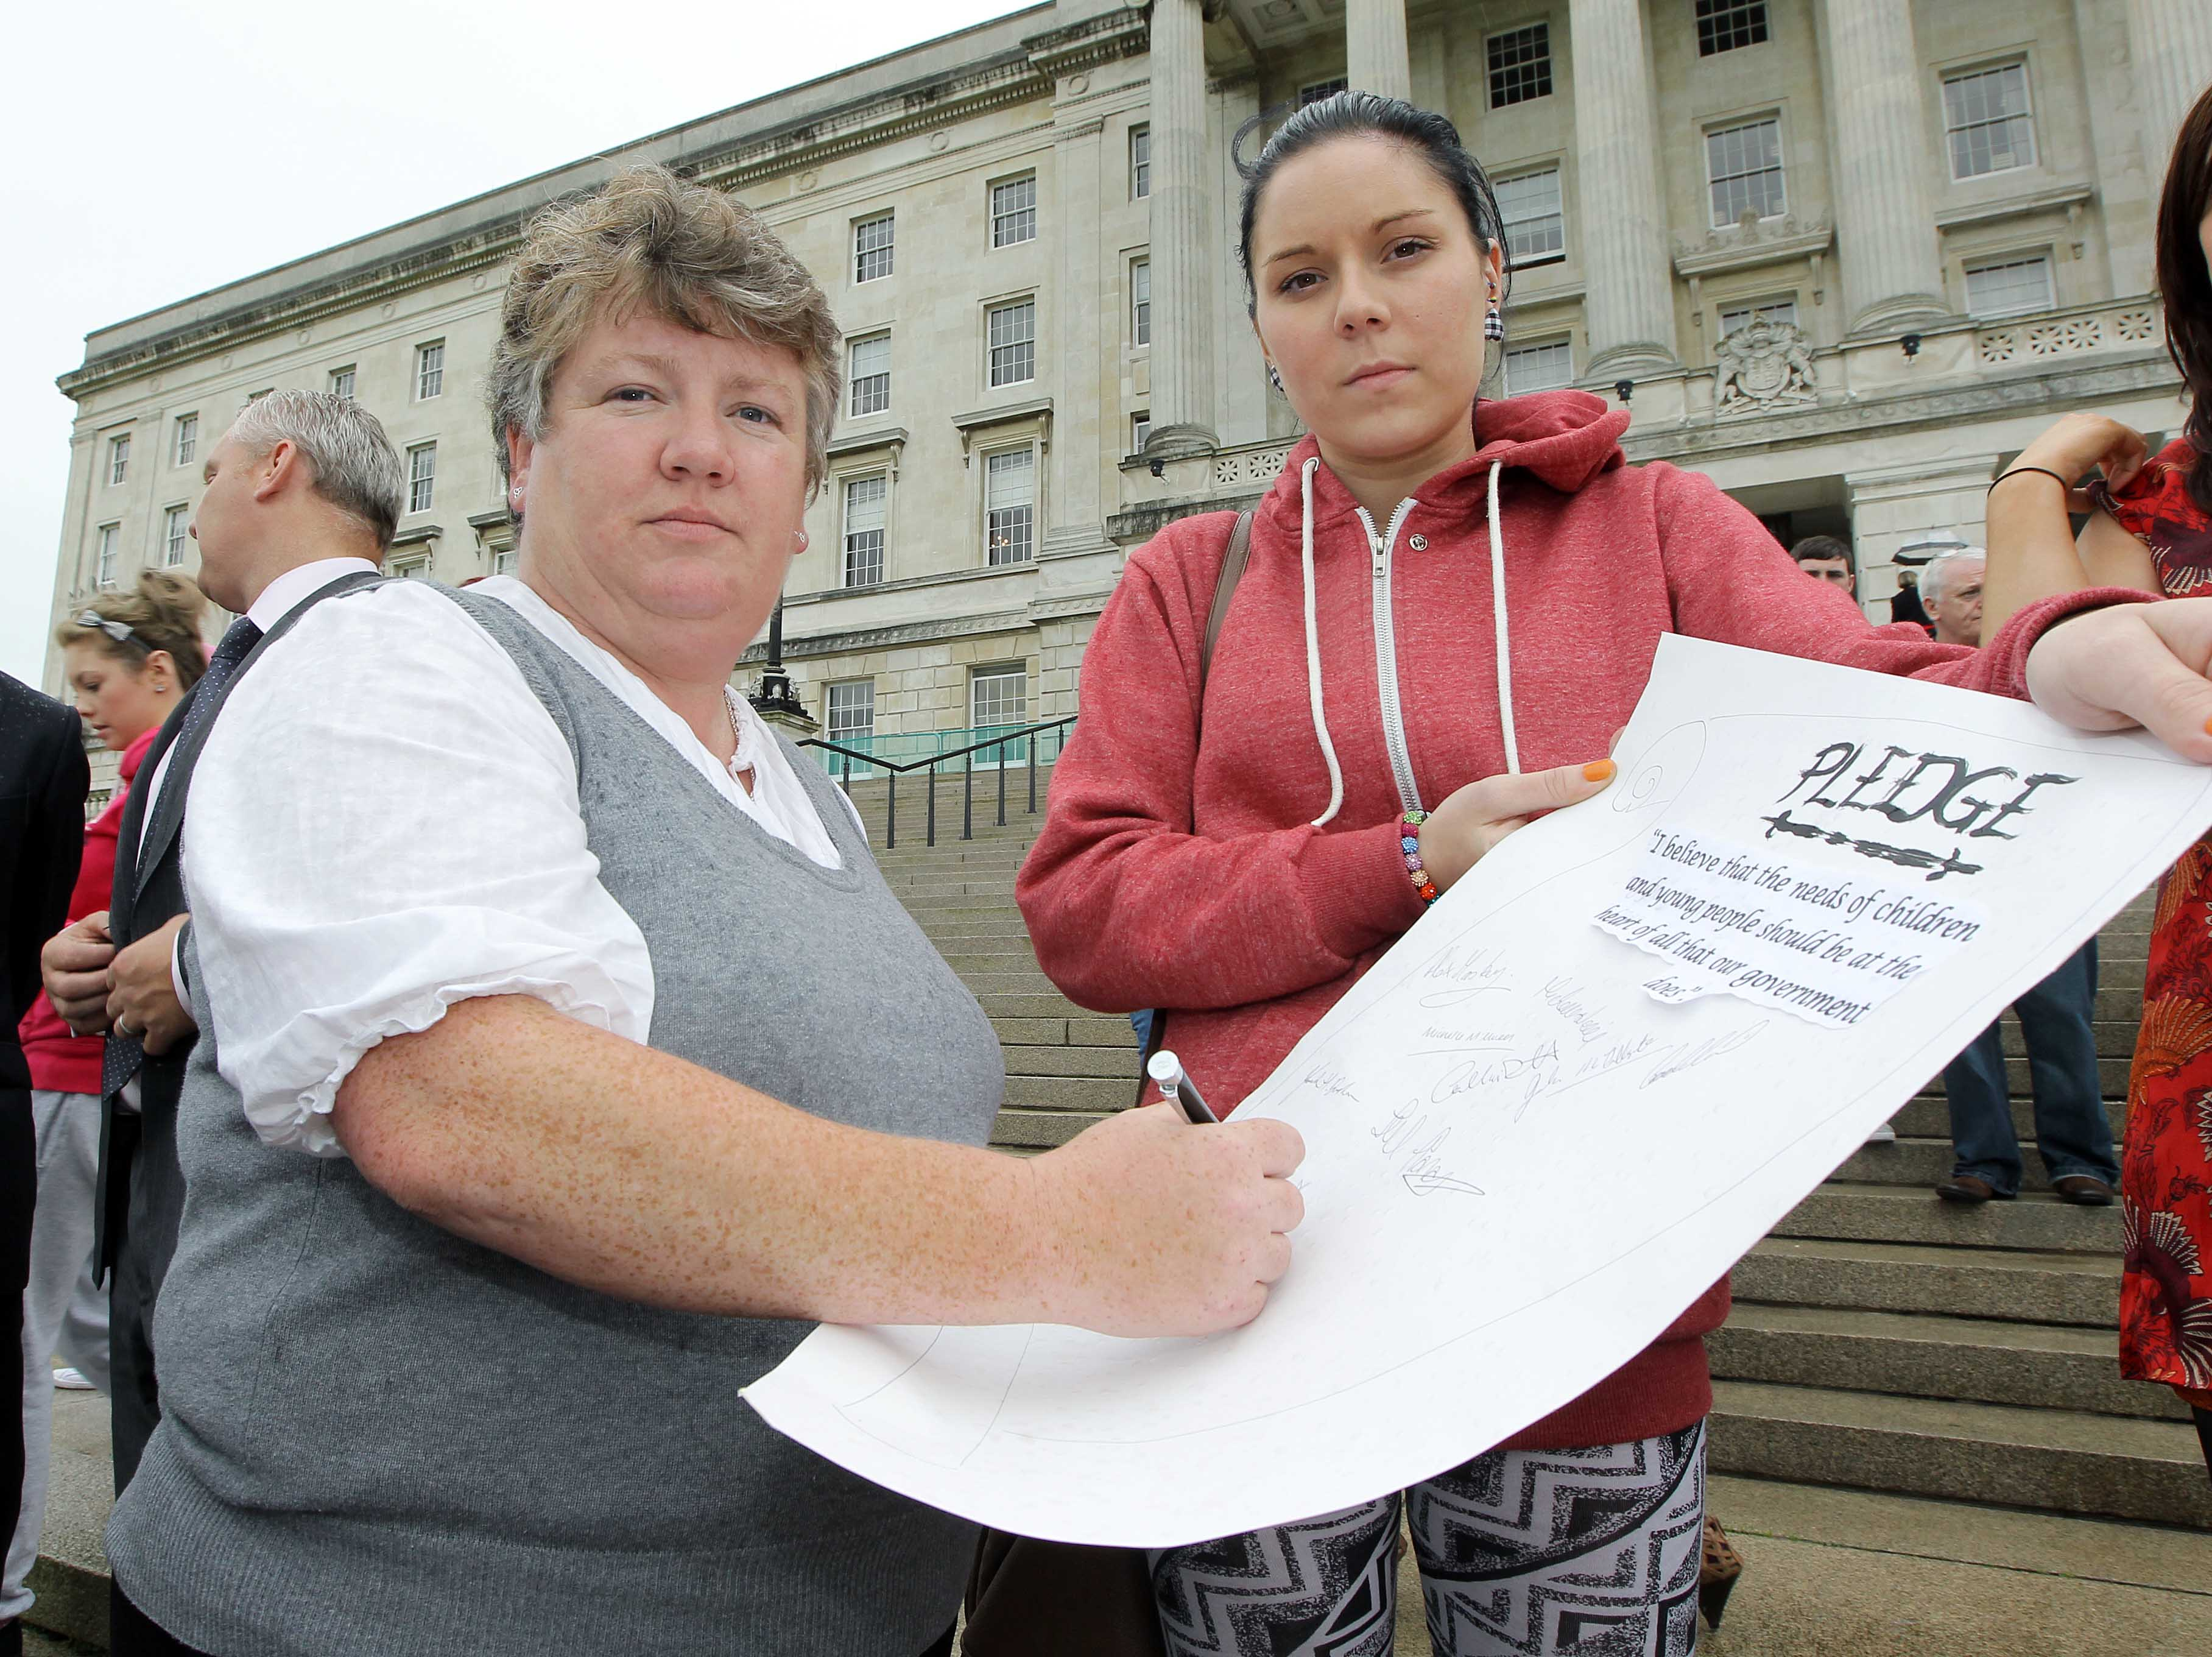 The Chairperson of the Northern Ireland Assembly Health Committee Sue Ramsey MLA signs a pledge stating that the needs of children and young people should be at the heart of all that government does. The signing of the pledge followed a Health Committee led event where 80 young people met with MLAs and Ministers to mark World Suicide Prevention Day.